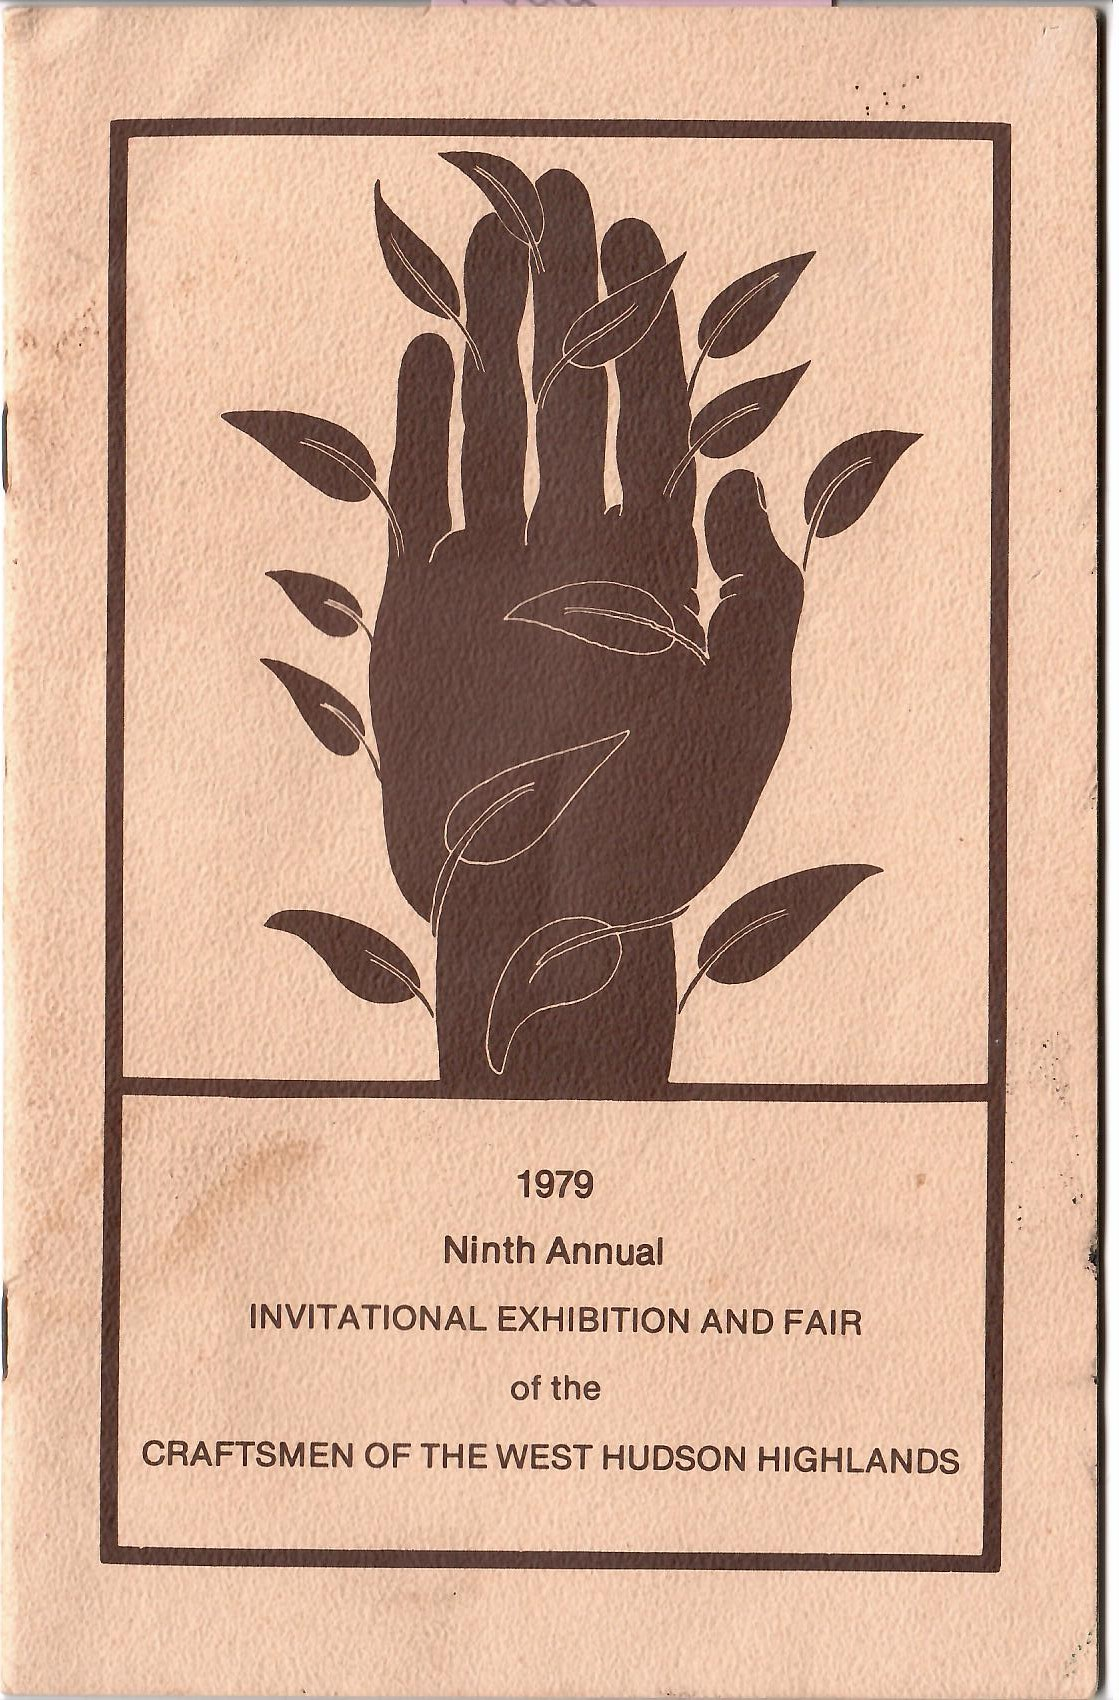 Image for 1979 NINTH ANNUAL INVITATIONAL EXHIBITION AND FAIR OF THE CRAFTSMEN OF THE WEST HUDSON HIGHLANDS